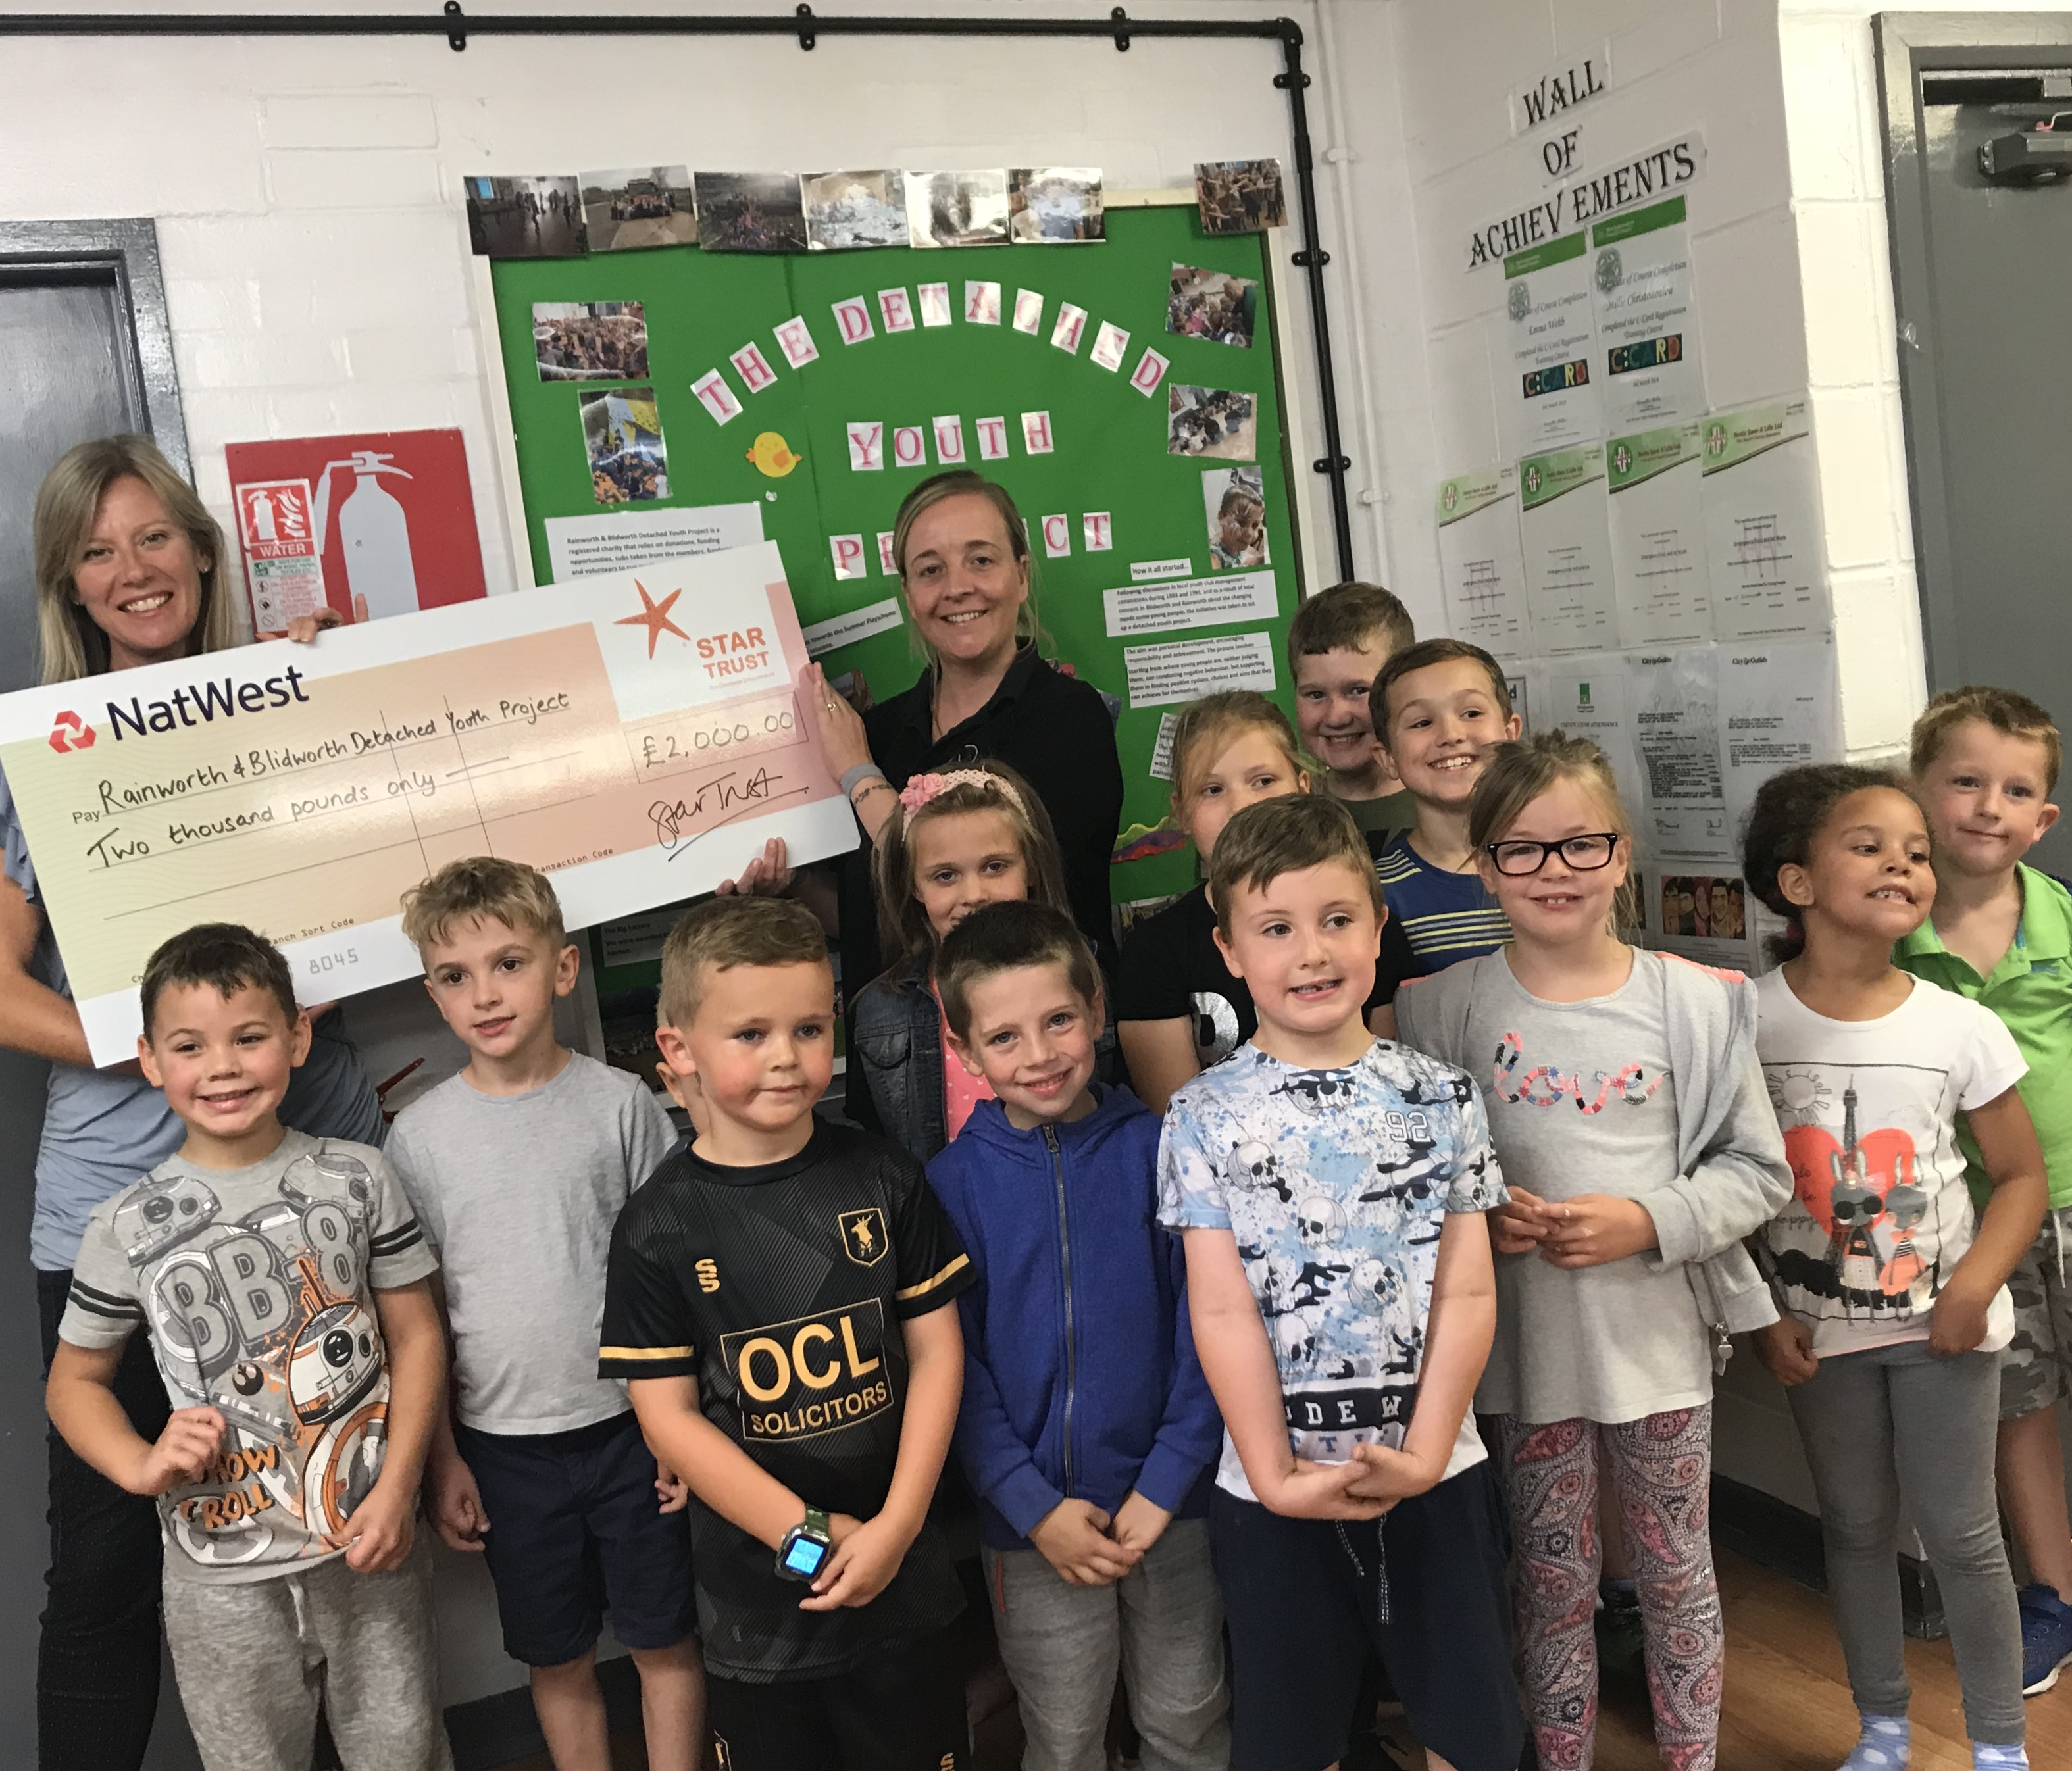 MANSFIELD YOUTH AND COMMUNITY CENTRE CAN FUND SCHEME THANKS TO £2K FROM STAR TRUST